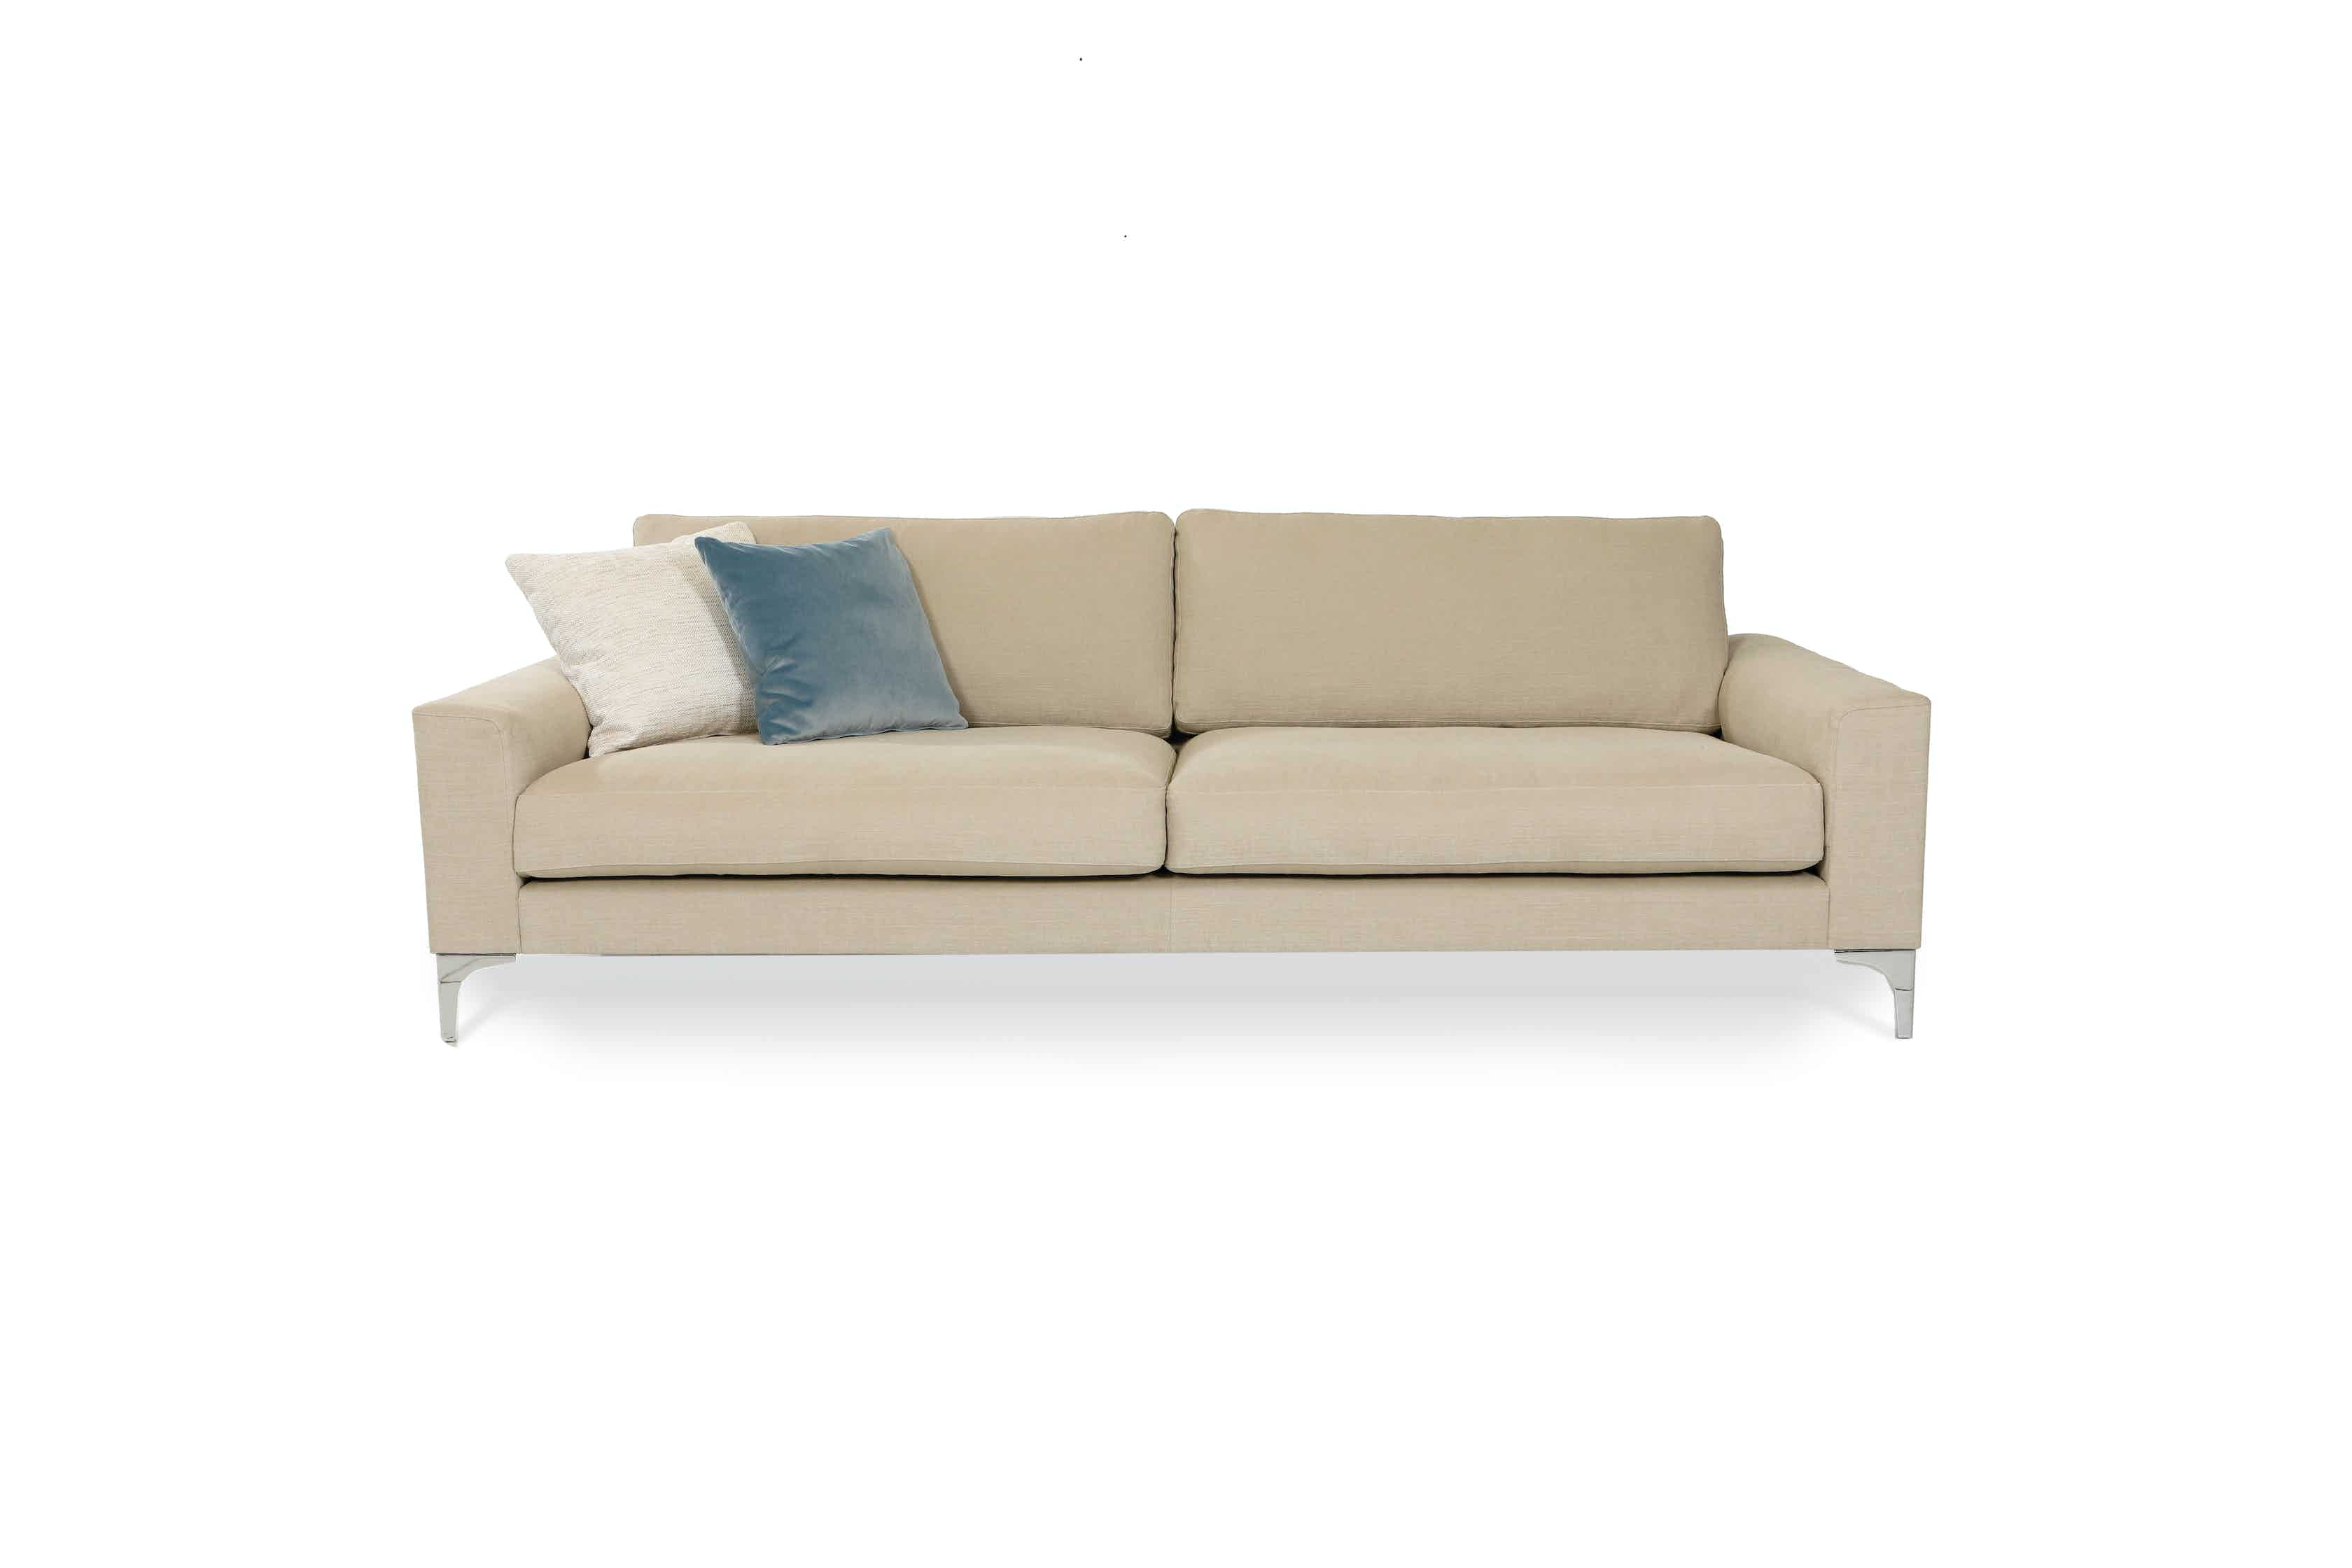 Jab Anstoetz White Jon Edwards Modular Sofa Haute Living